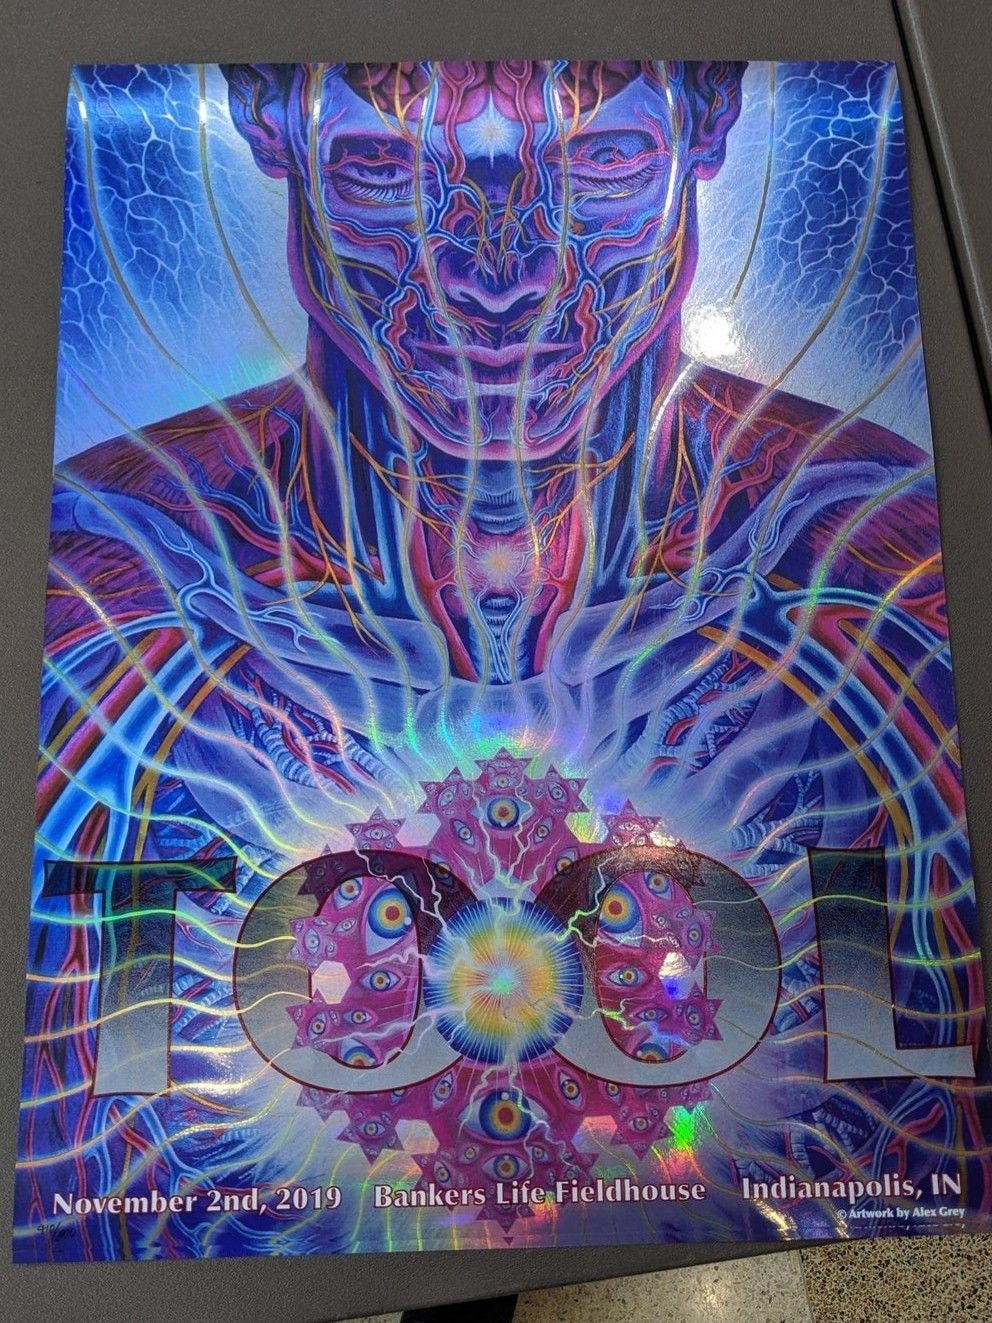 Alex Grey Tool Indianapolis Concert Poster 2019 Band Posters Tool Concert Concert Posters